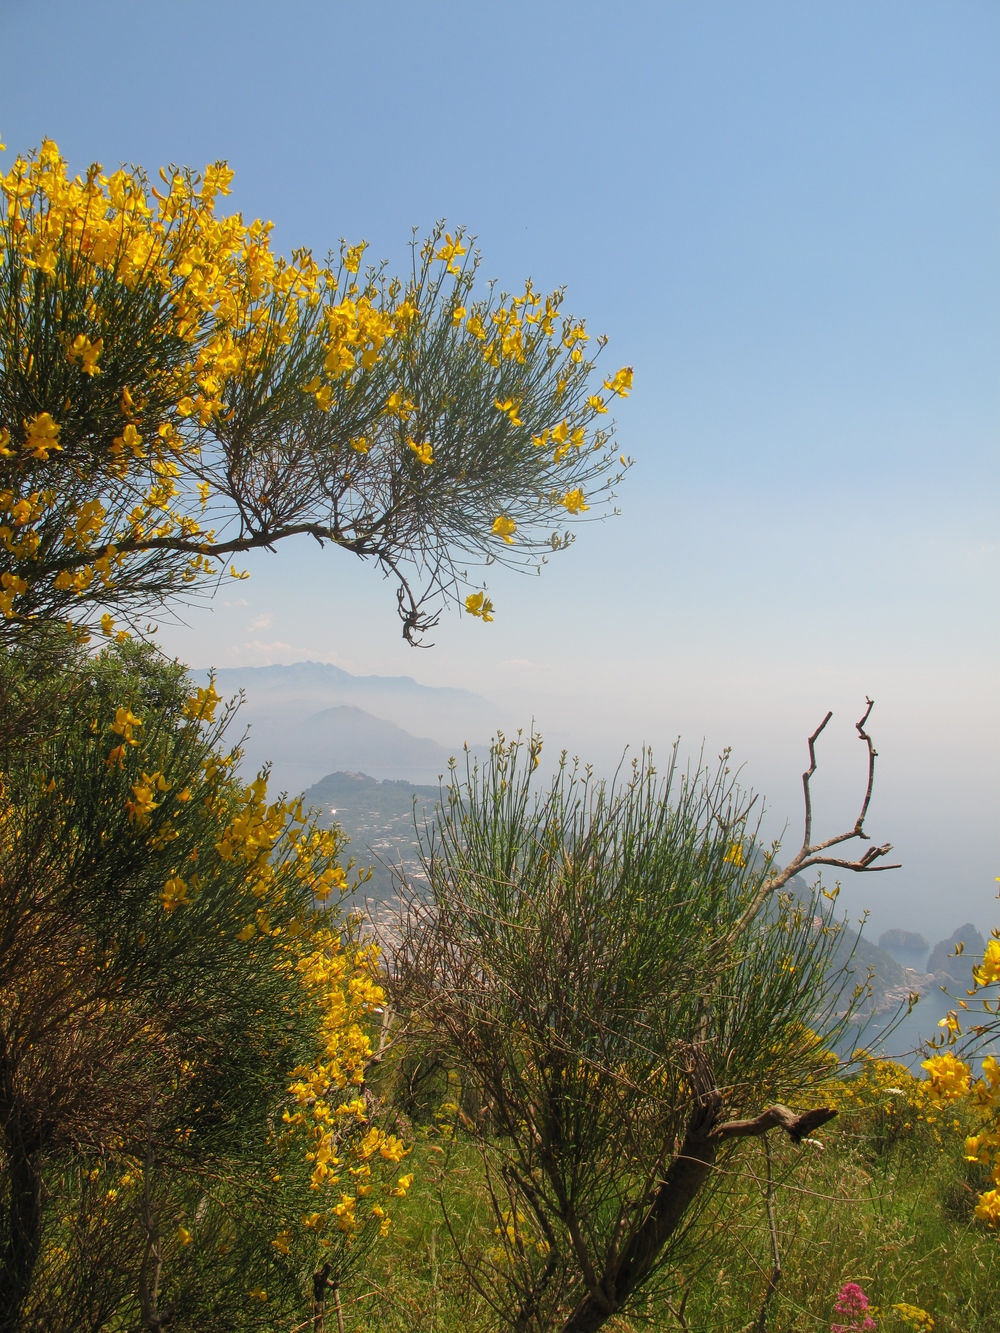 Yellow flowers and the mountains of Capri